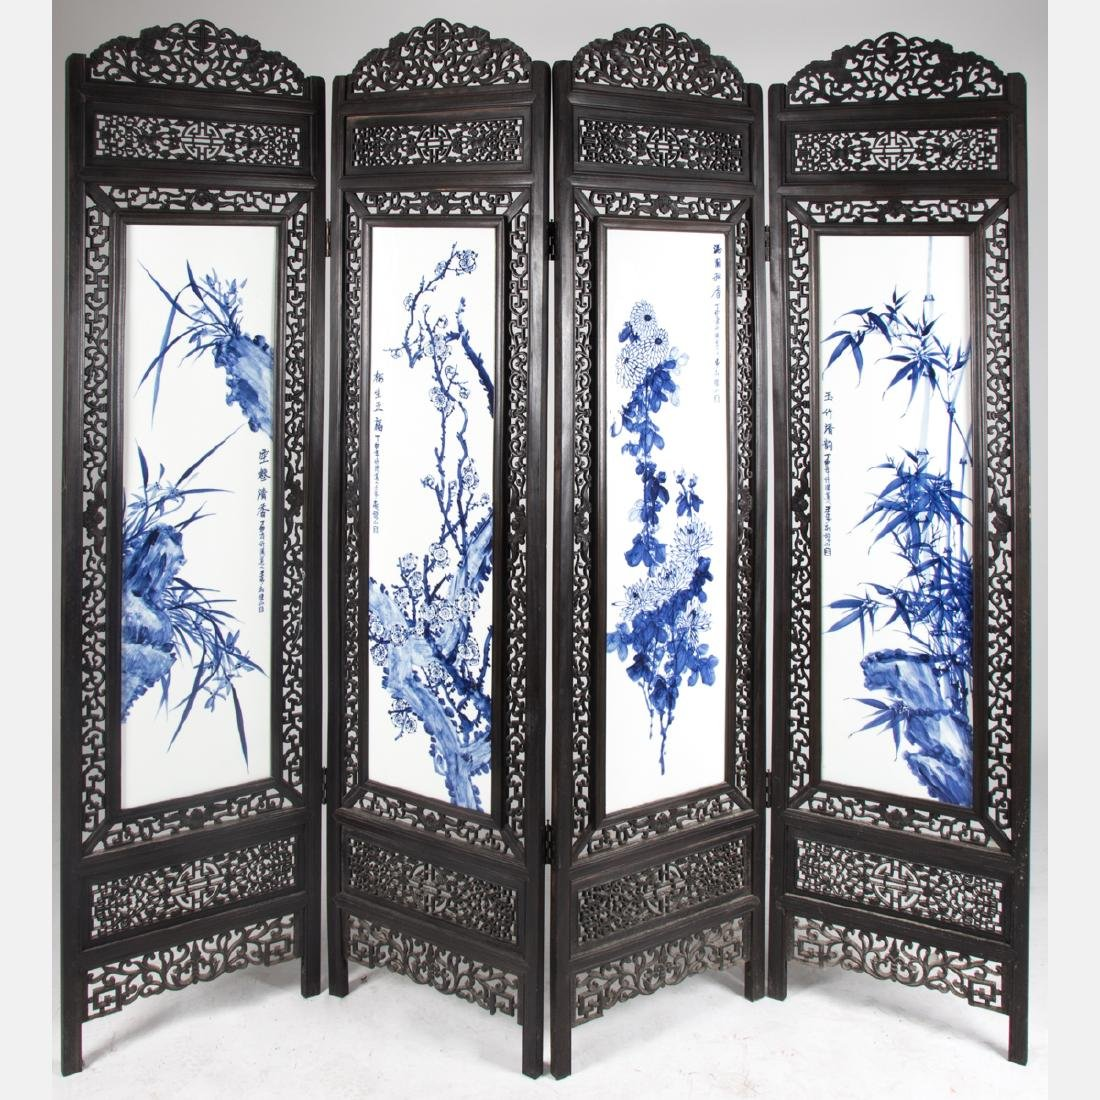 A Chinese Carved Hardwood, Blue and White Porcelain